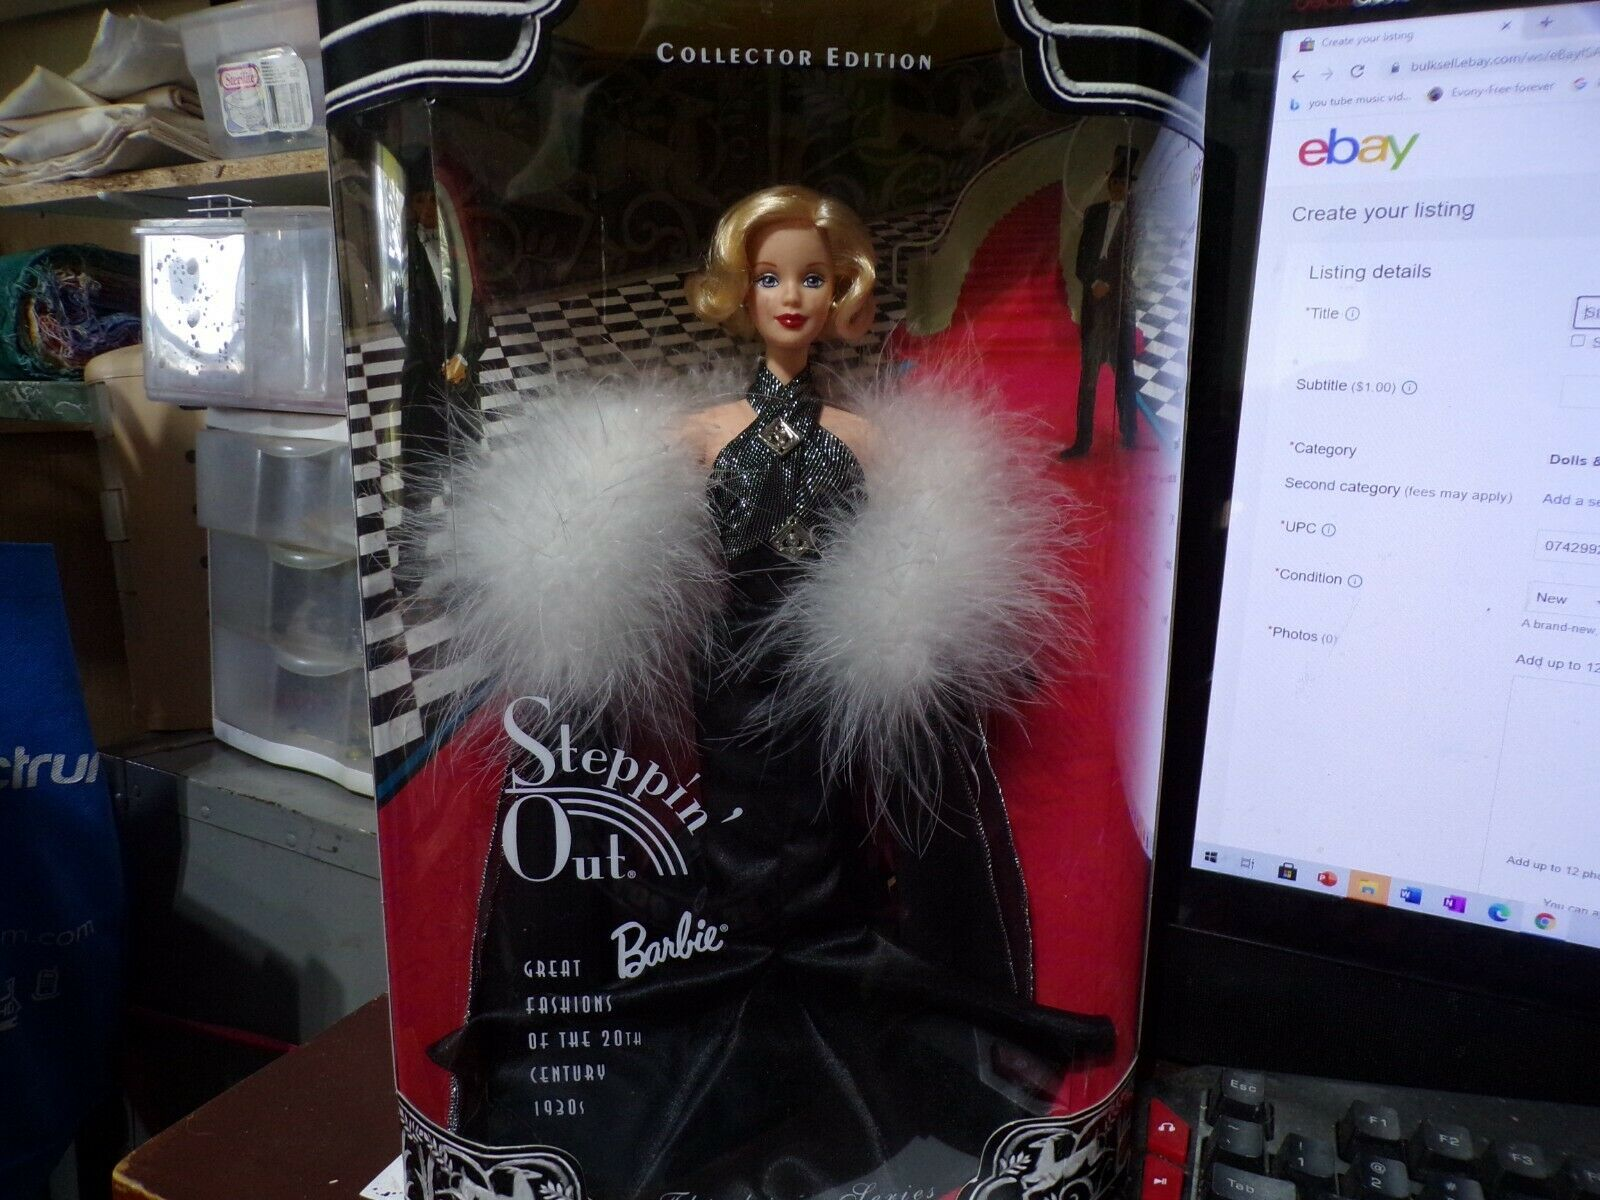 Stepping Out Barbie Collectors Edition Third In Series1998-21531-New NRFB - $40.00